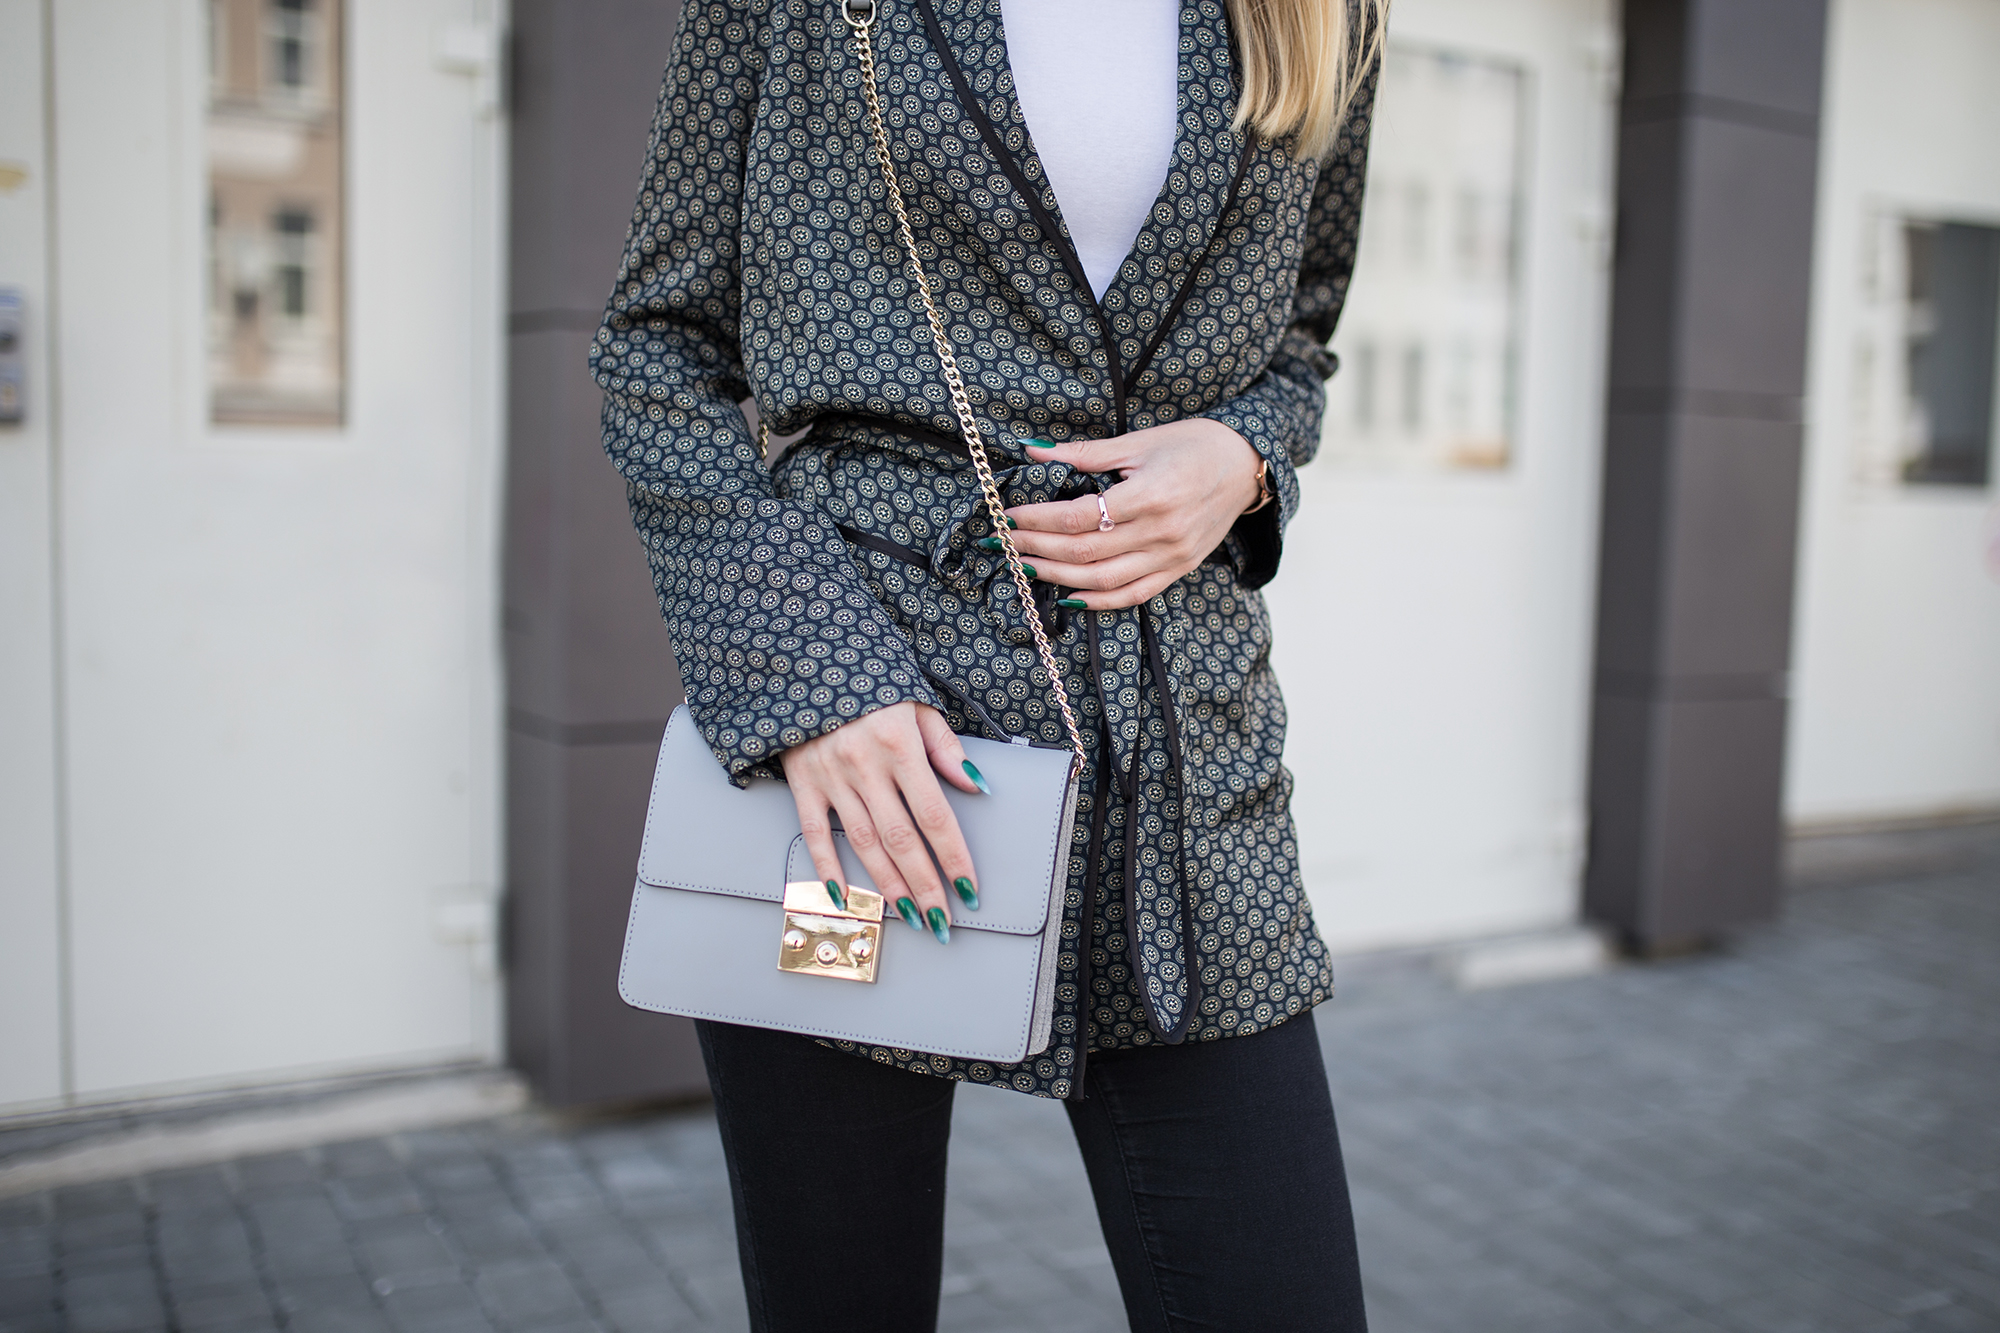 small-grey-bag-satchel-outfit-street-style